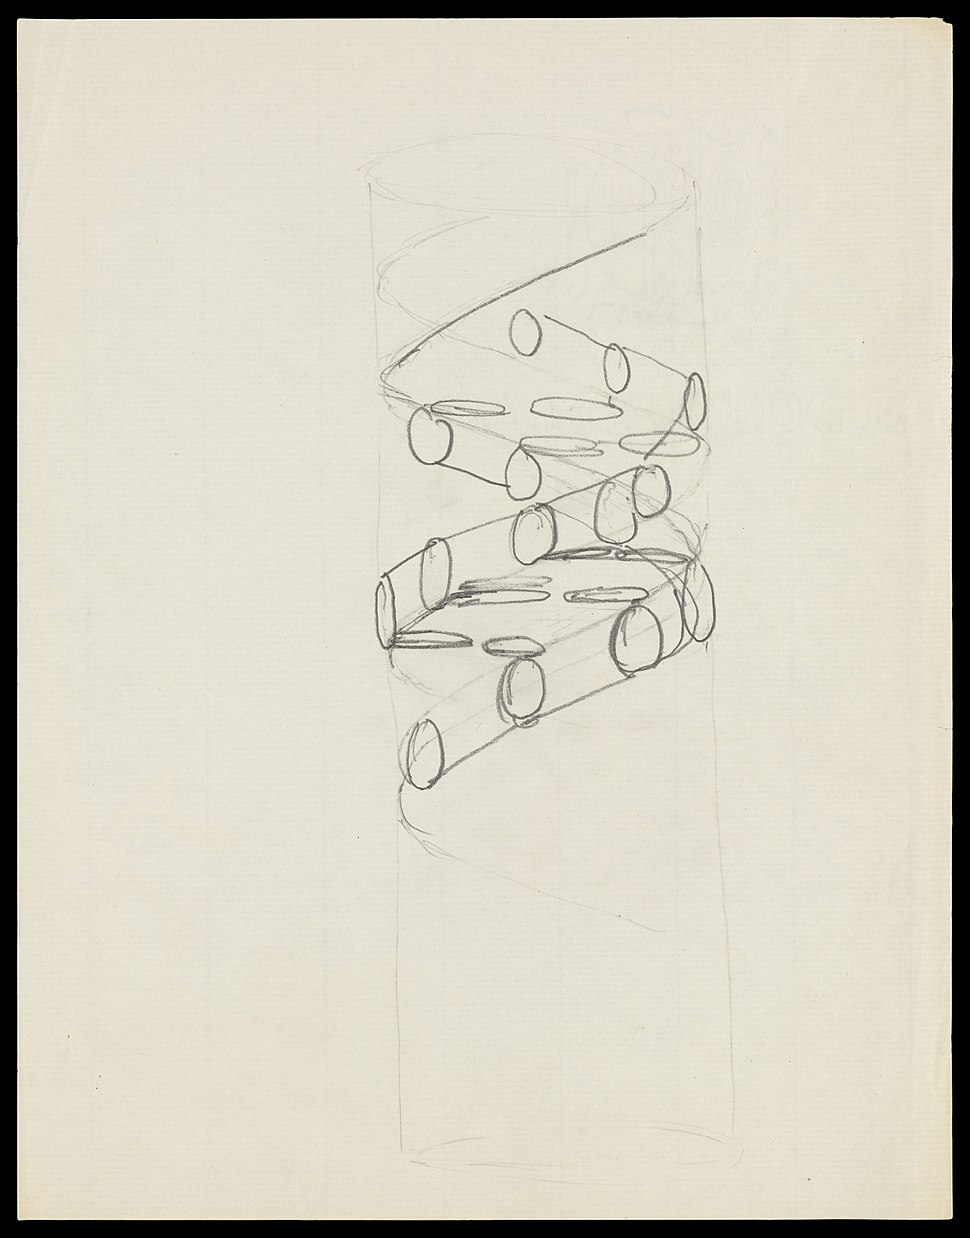 Pencil sketch of the DNA double helix by Francis Crick Wellcome L0051225